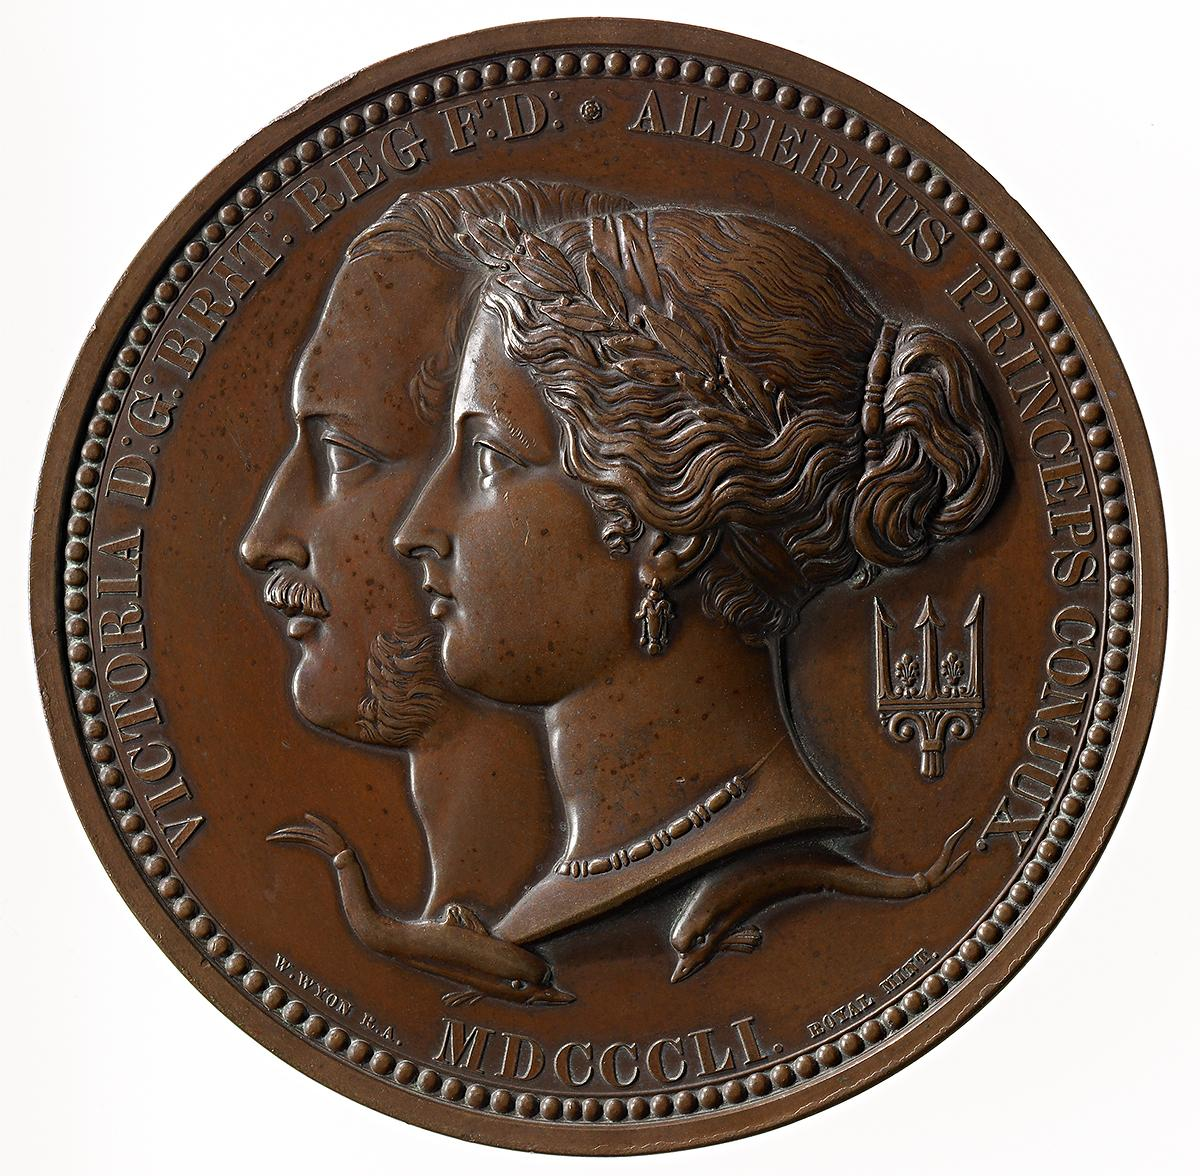 The Great Exhibition of the works of Industry of All Nations, London, prize medal